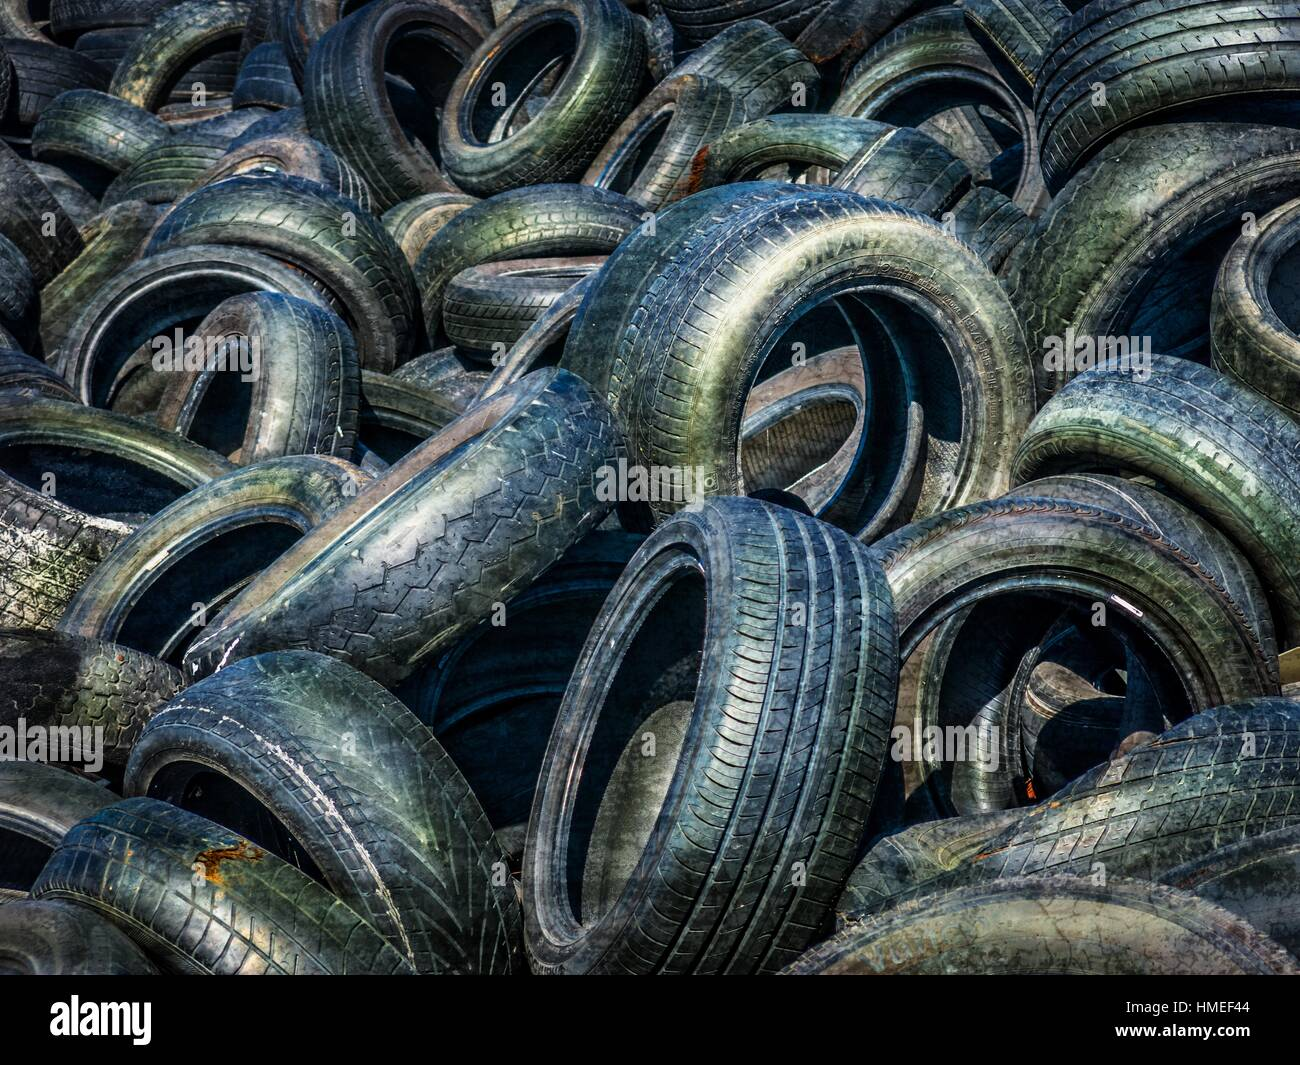 Old, discarded motor vehicle tyres. Cape Flats, Cape Town, South Africa. - Stock Image